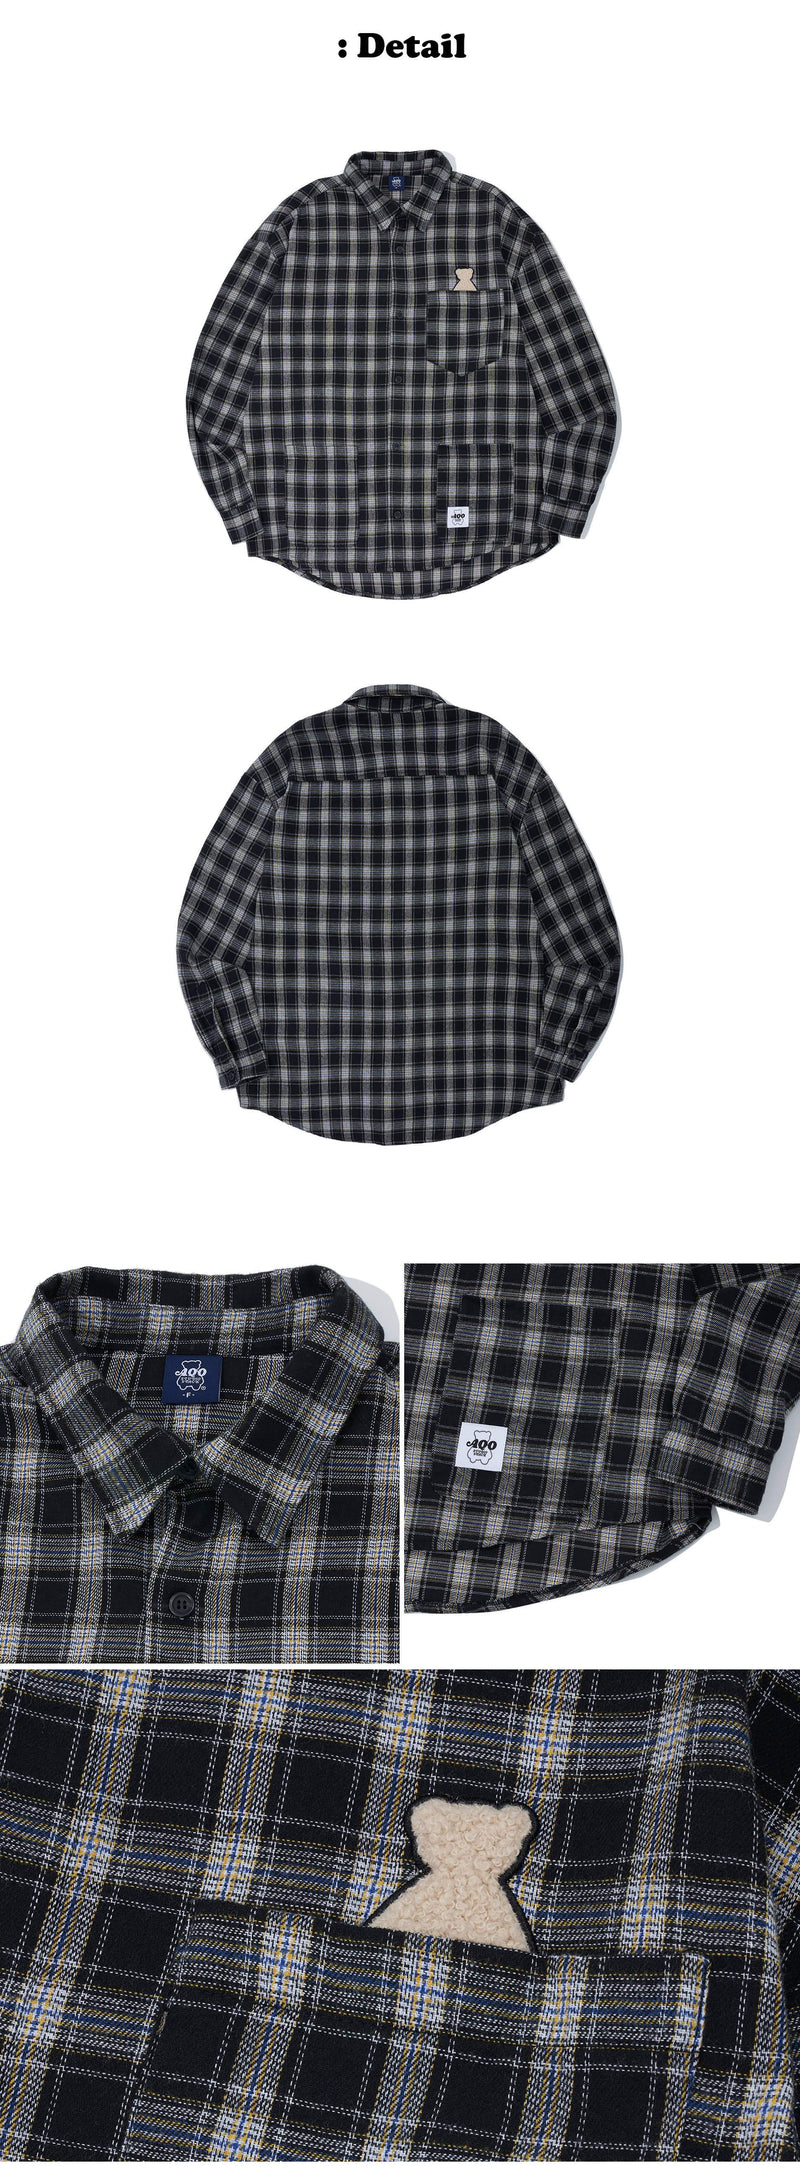 Aqo Studiospace Bear Retro Checkered Shirt AQO Studiospace